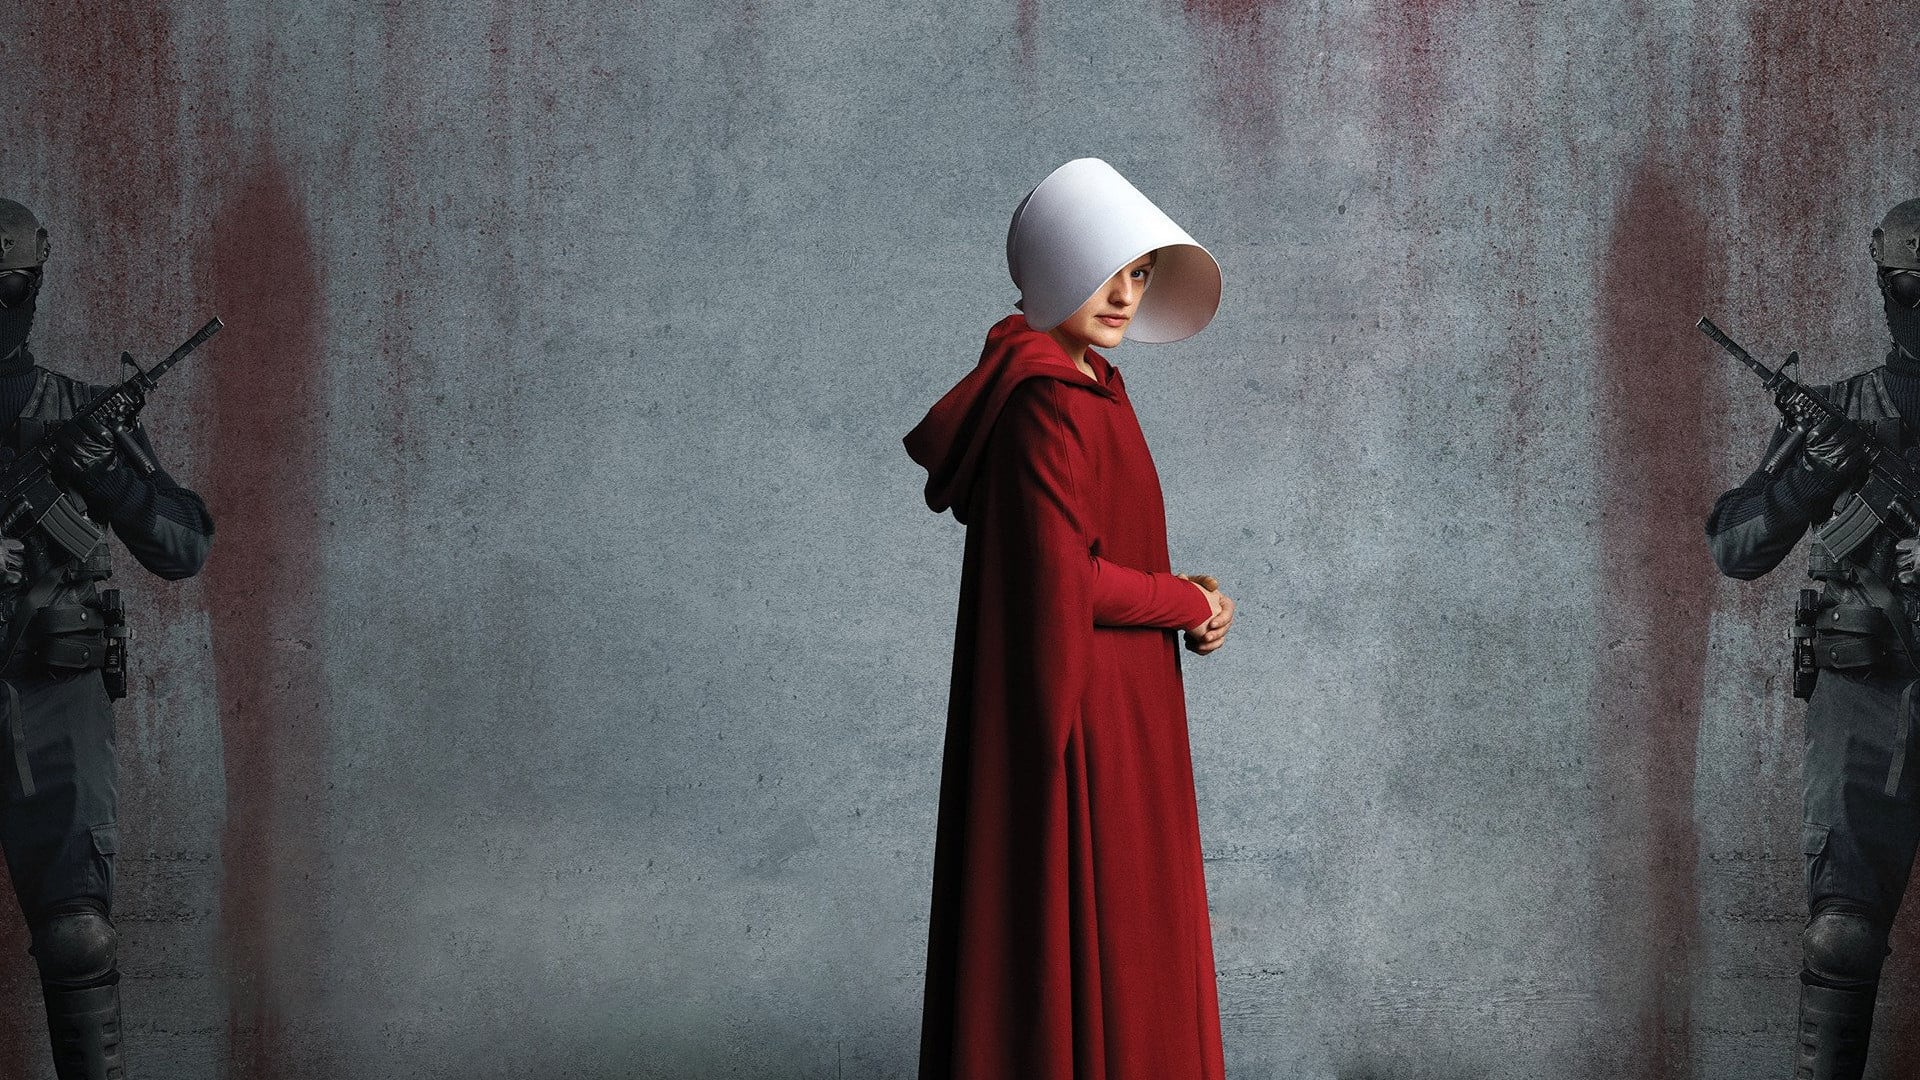 The Handmaid's Tale Season 2 Episode 7 : After